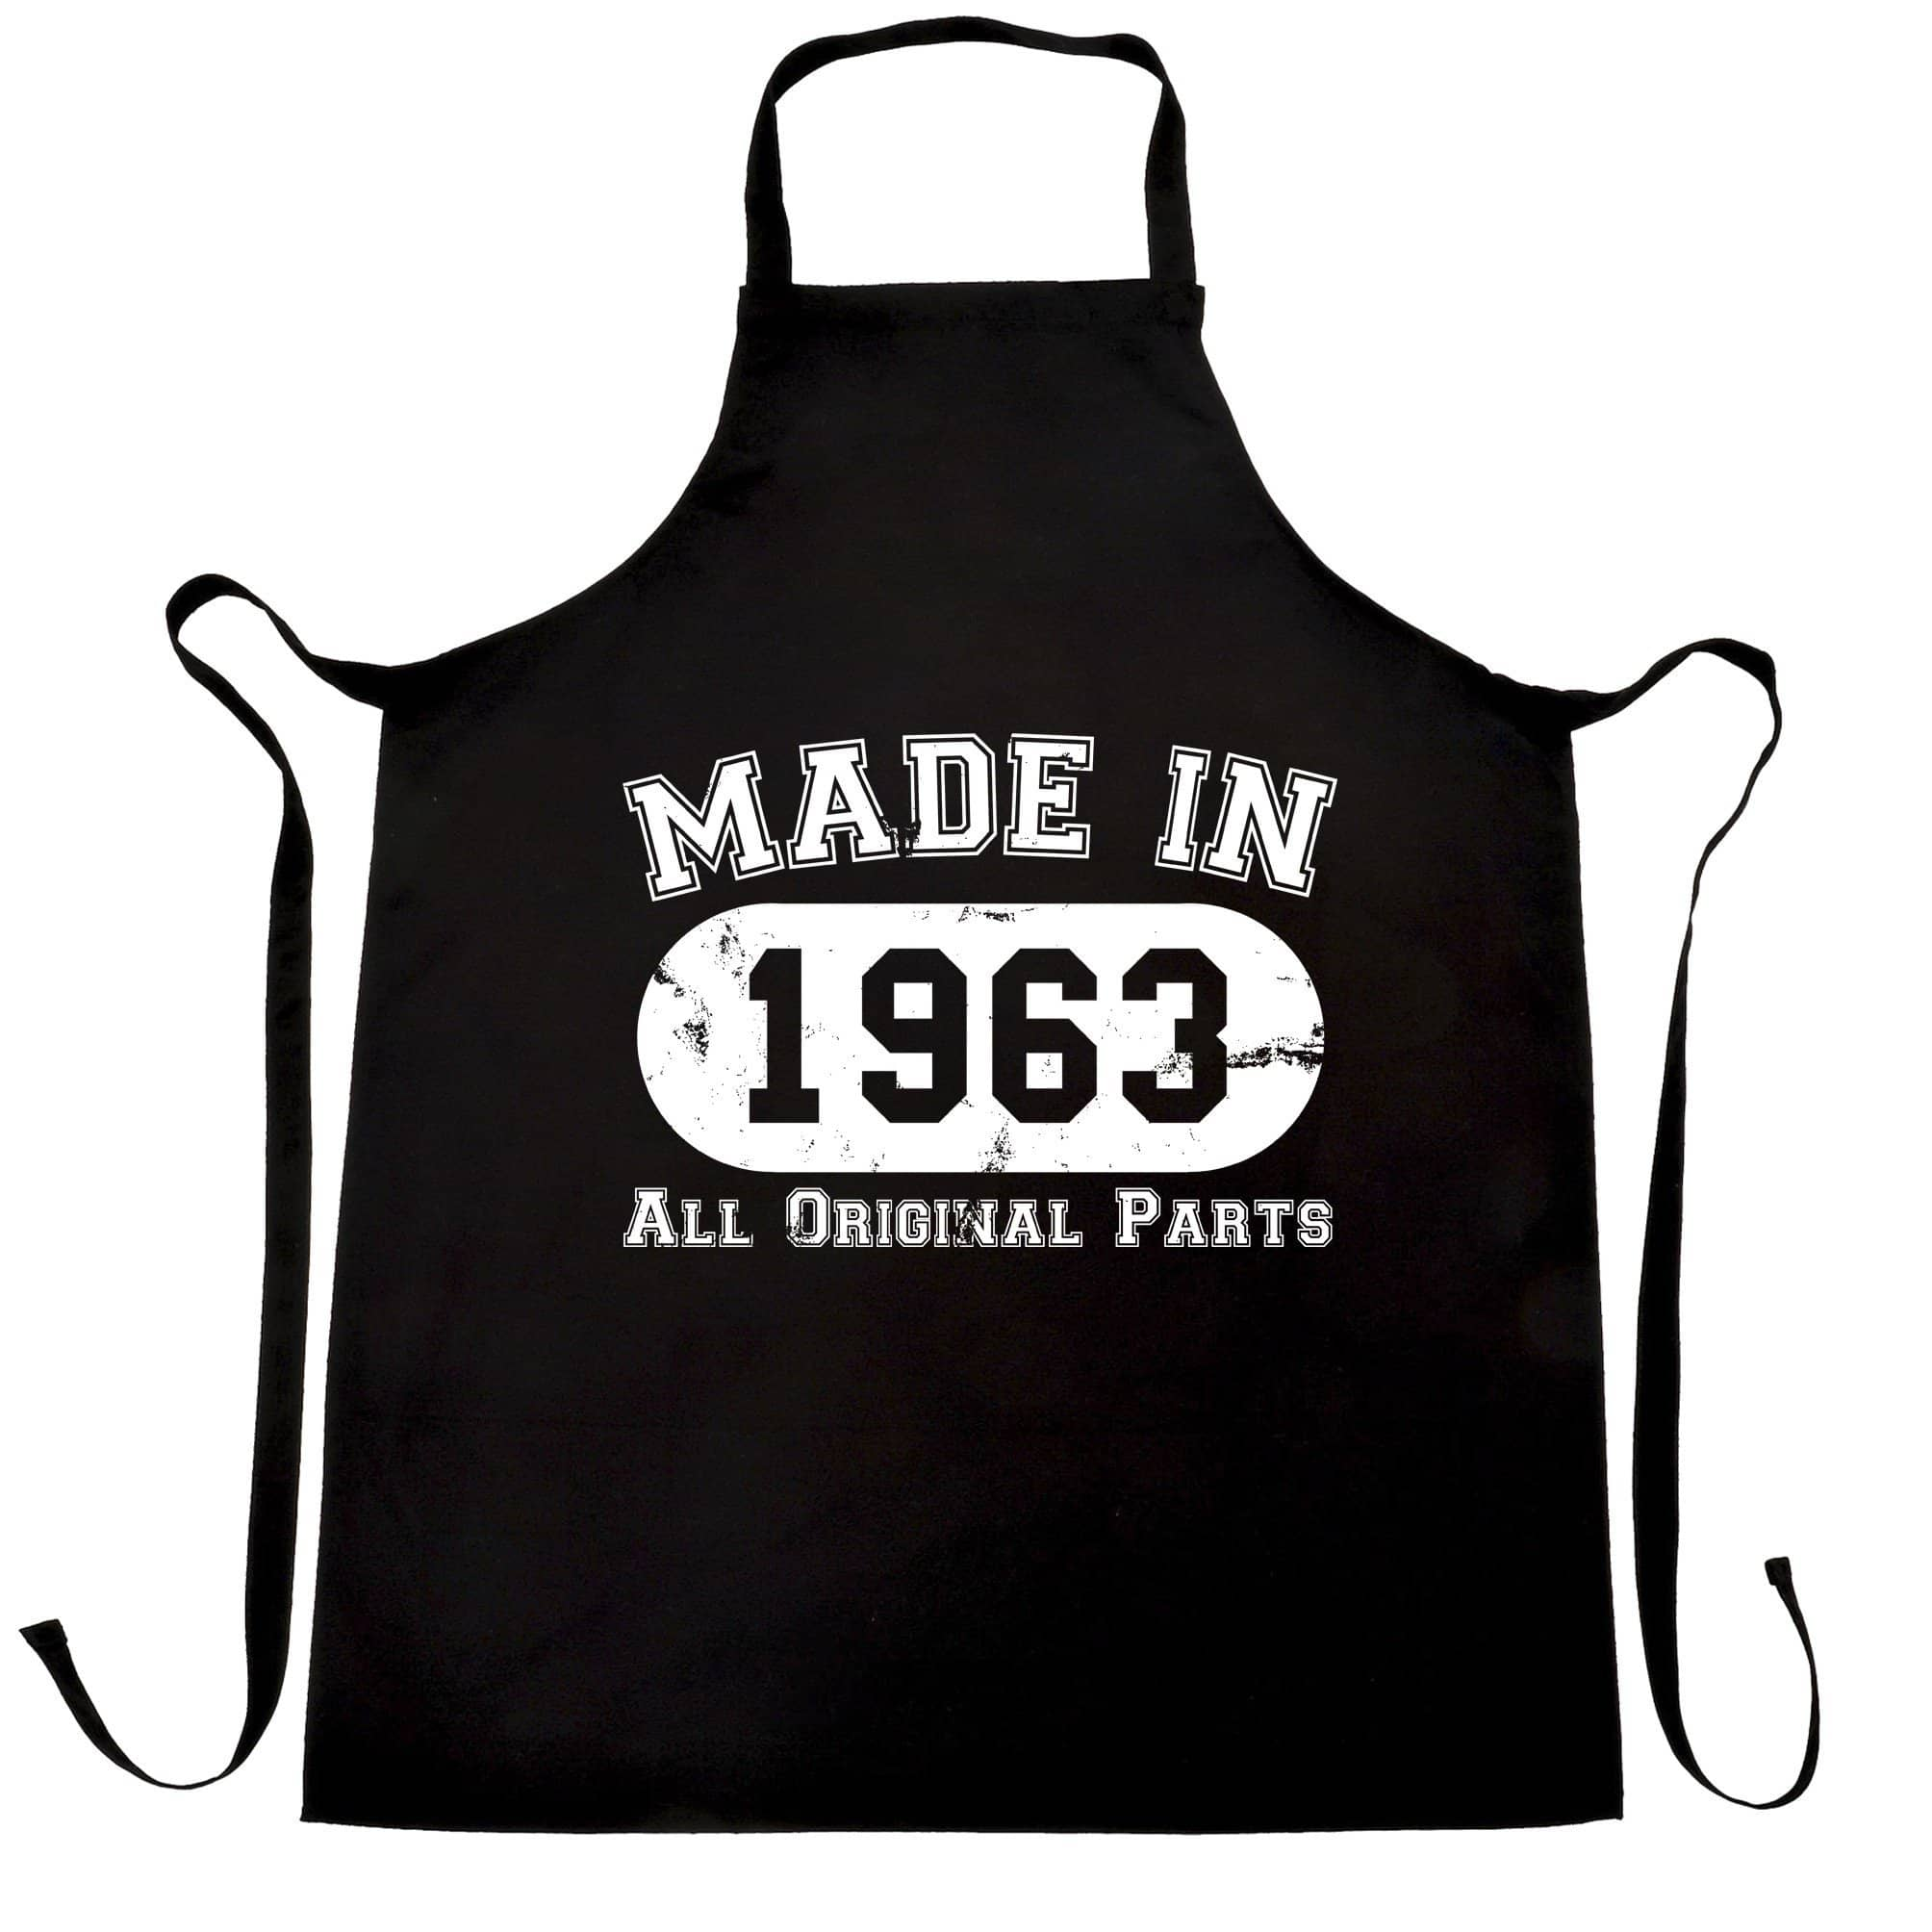 Made in 1963 All Original Parts Apron [Distressed]